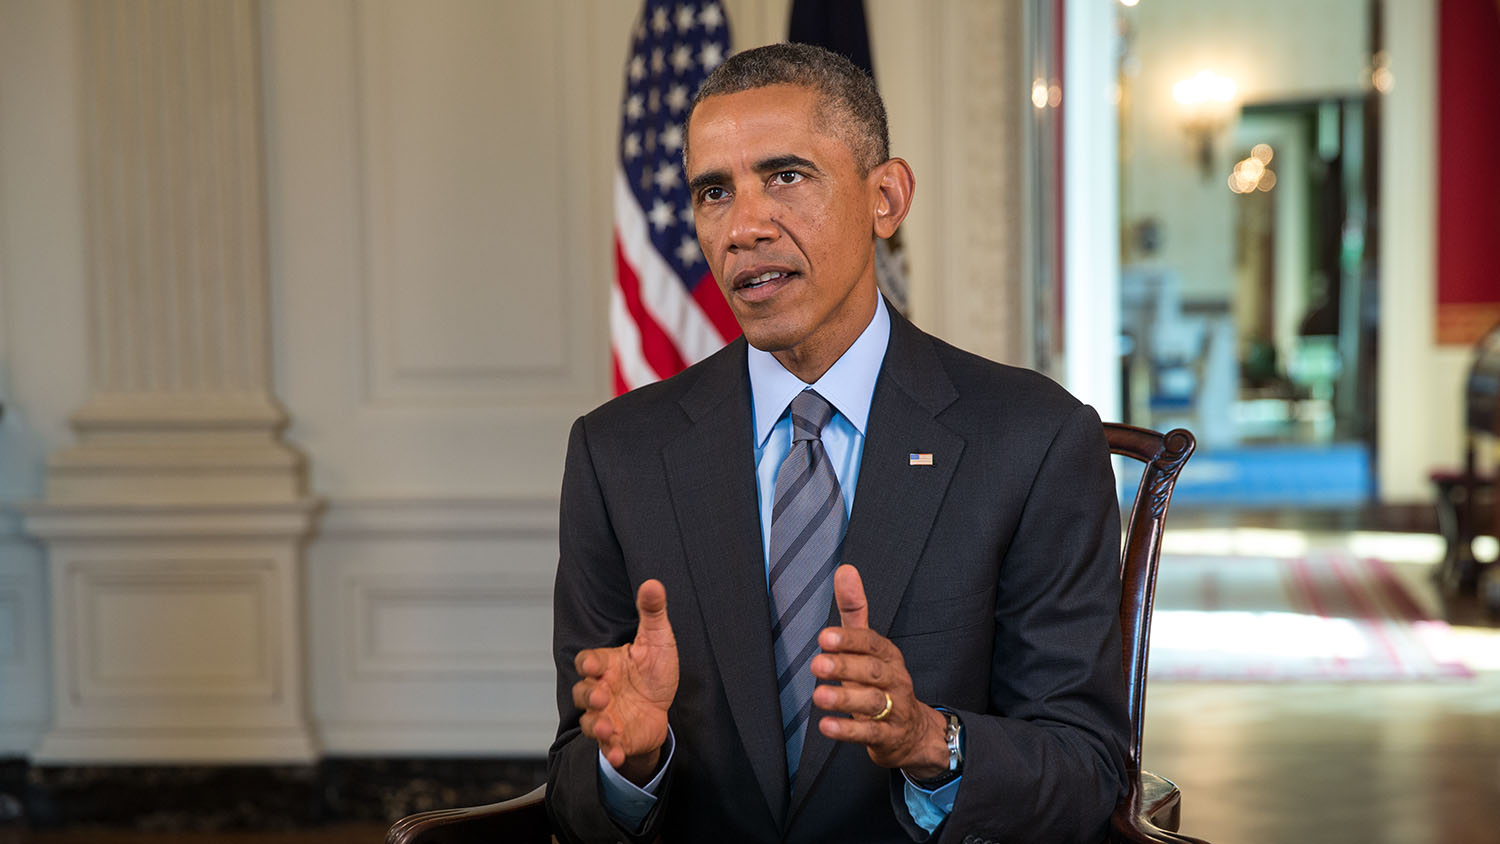 President Obama tapes the Weekly Address on ISIL